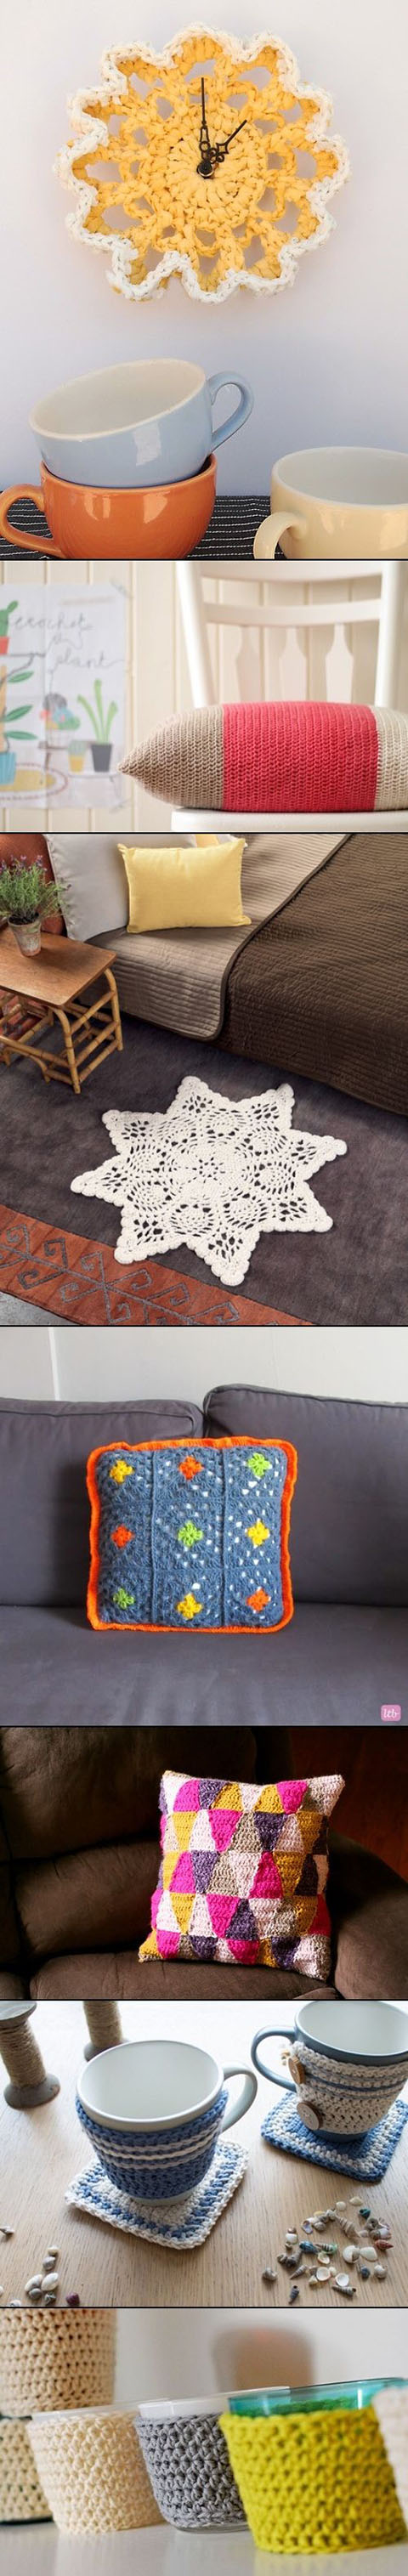 DIY Crochet and knitted Crafts11